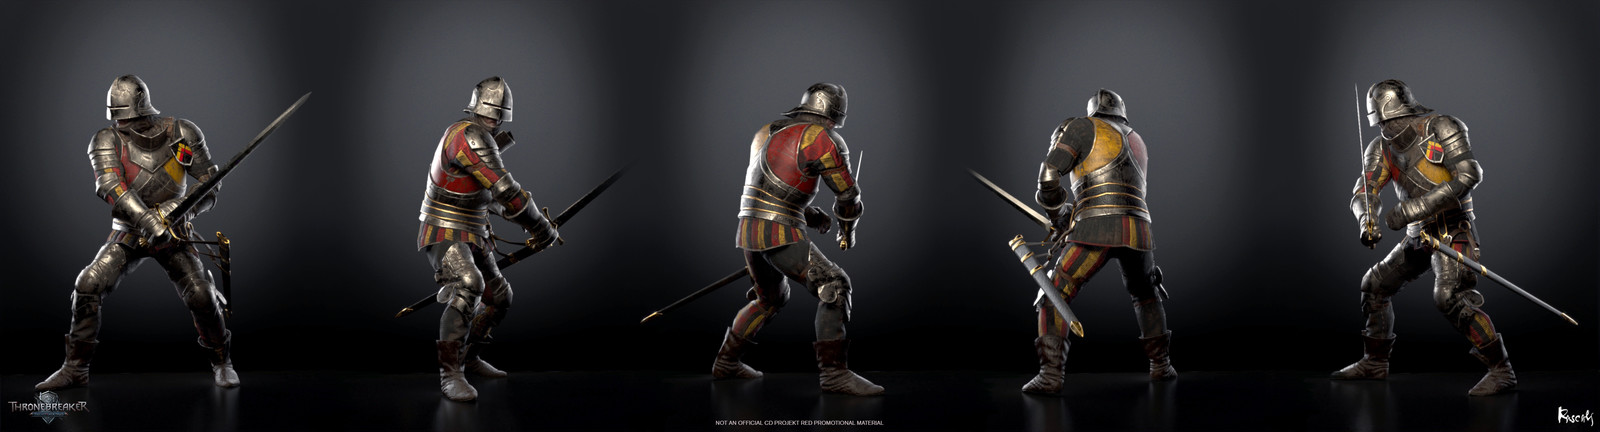 Artist: David Aucourt, Art Director: Roman Mindek, Producer: Tom Roller.  Poses created from rigs and animation by CD PROJEKT RED. Check out more from Rascals at www.rascals.studio